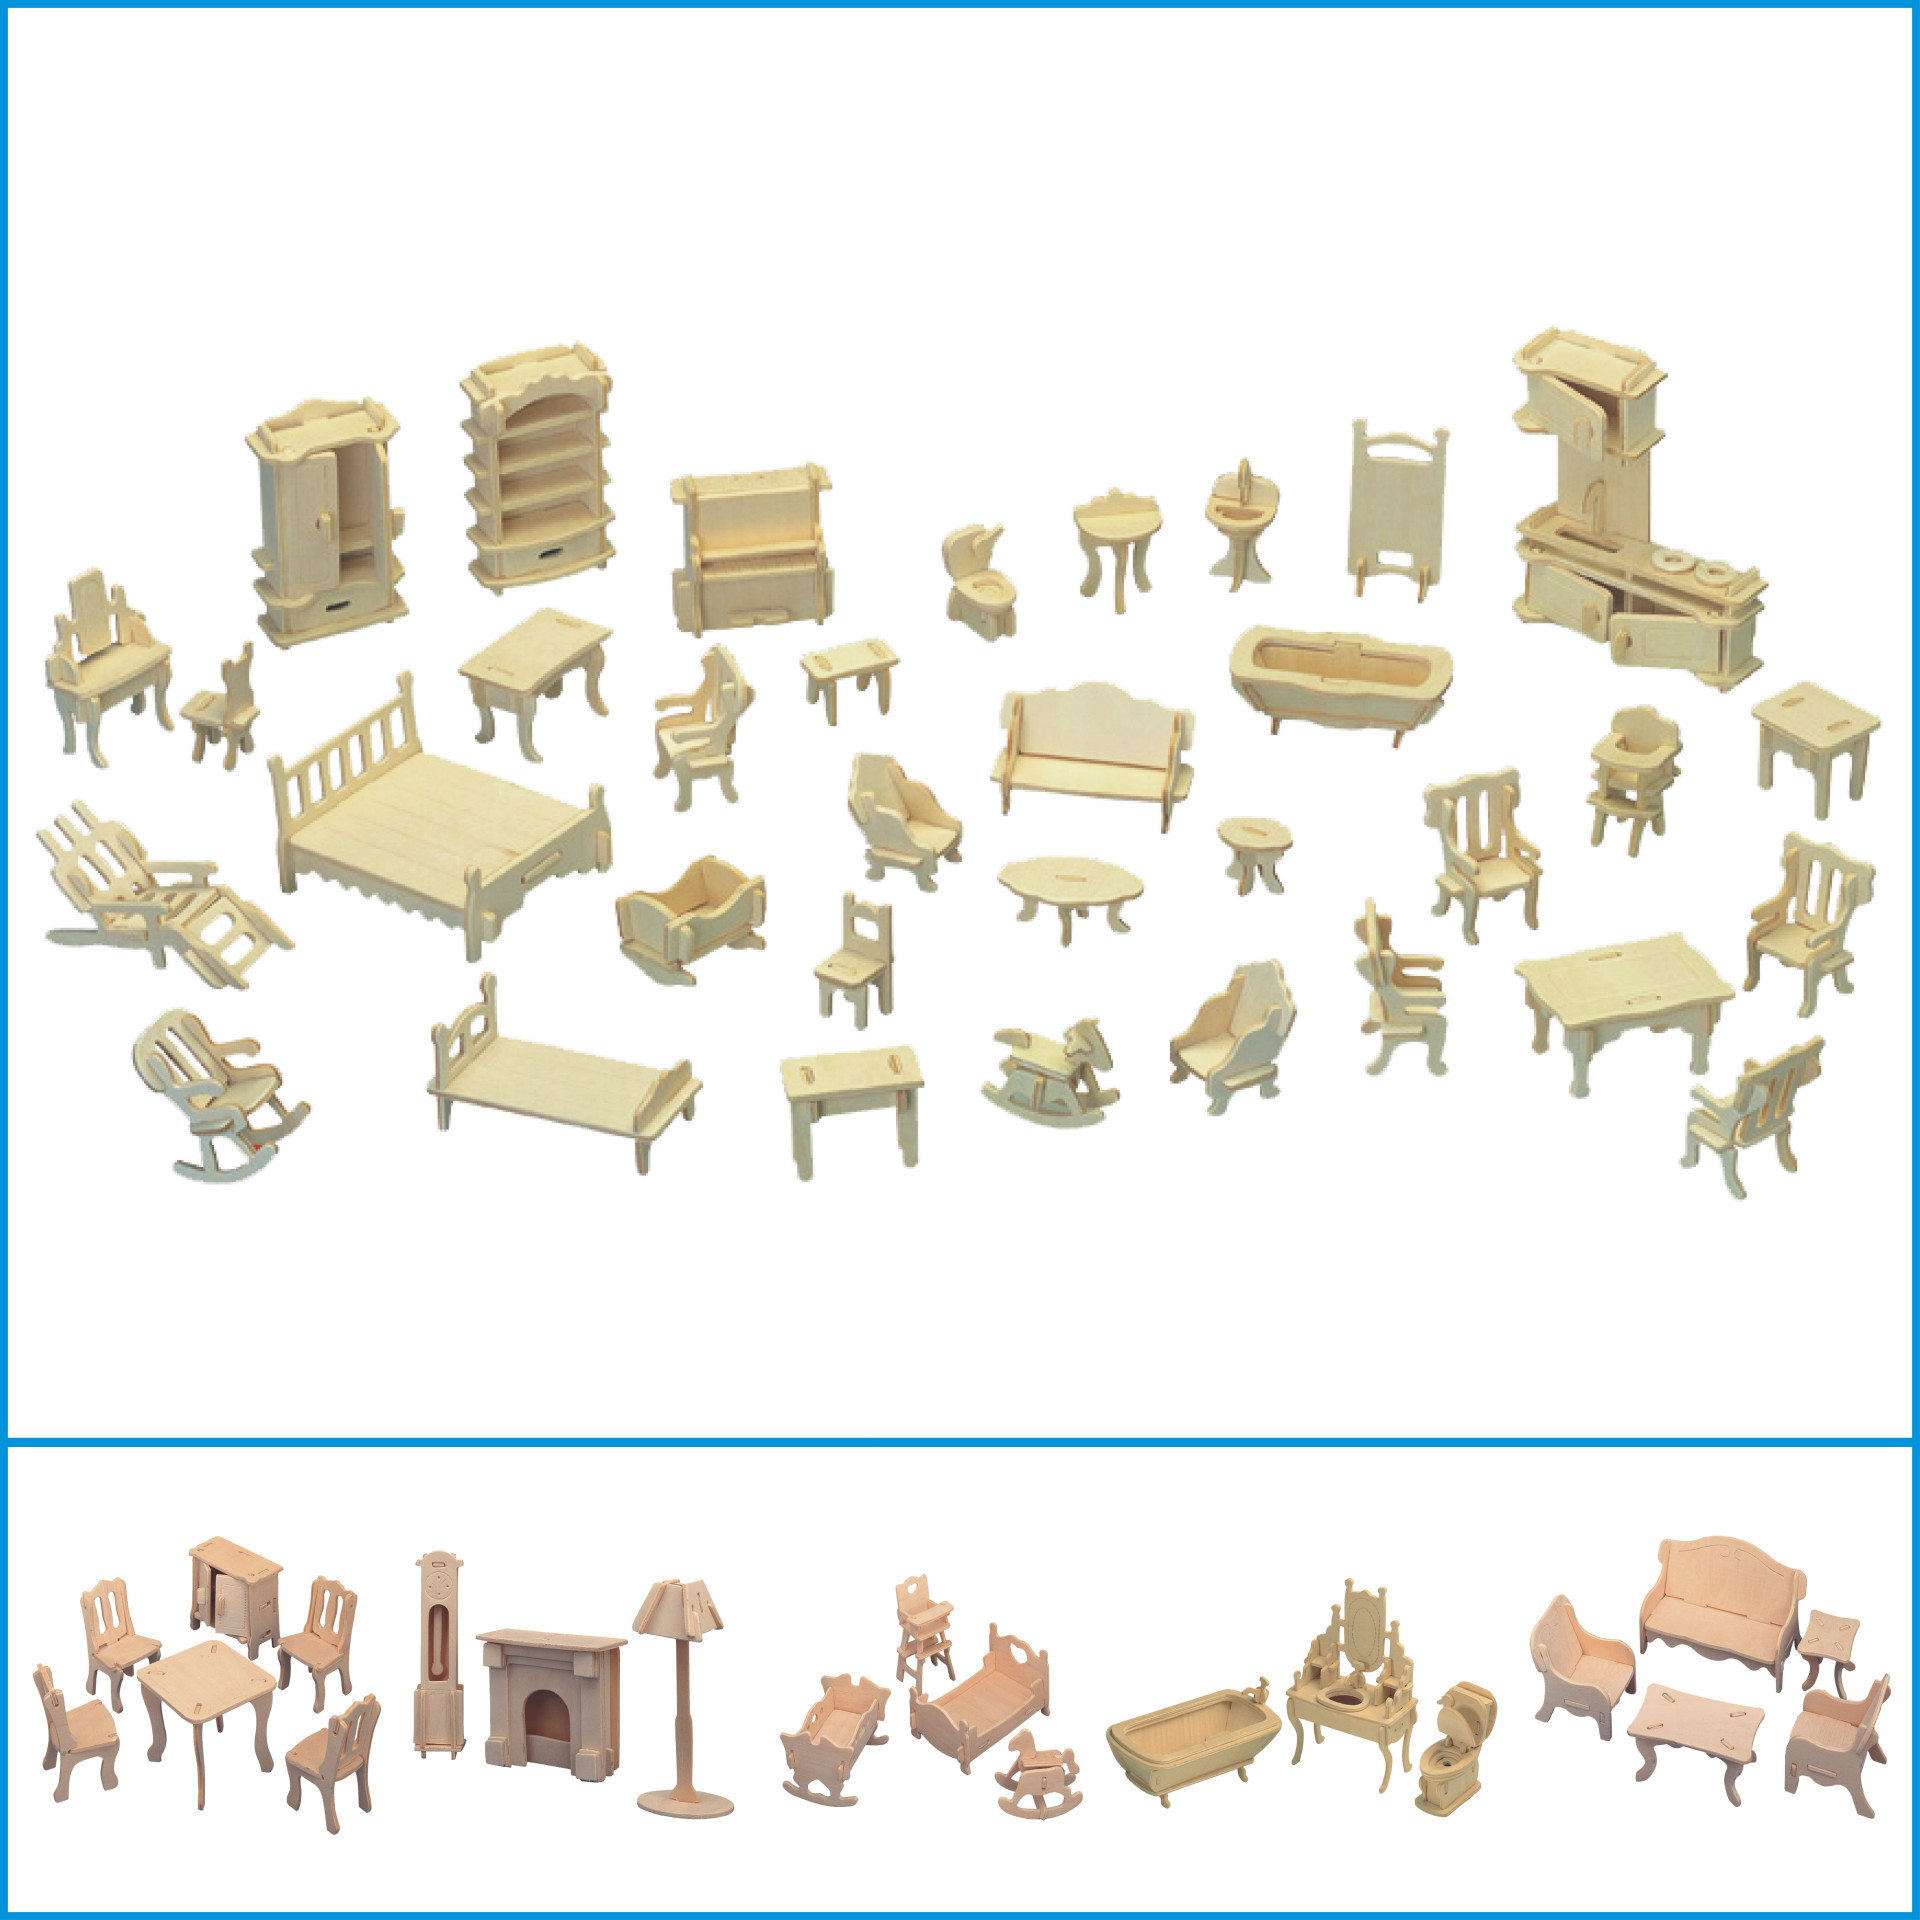 Laser Cutting Mini 3D Wooden Puzzle DIY Building Model Toys Miniature 1:12 Dollhouse Furniture For Dolls For Children Gift